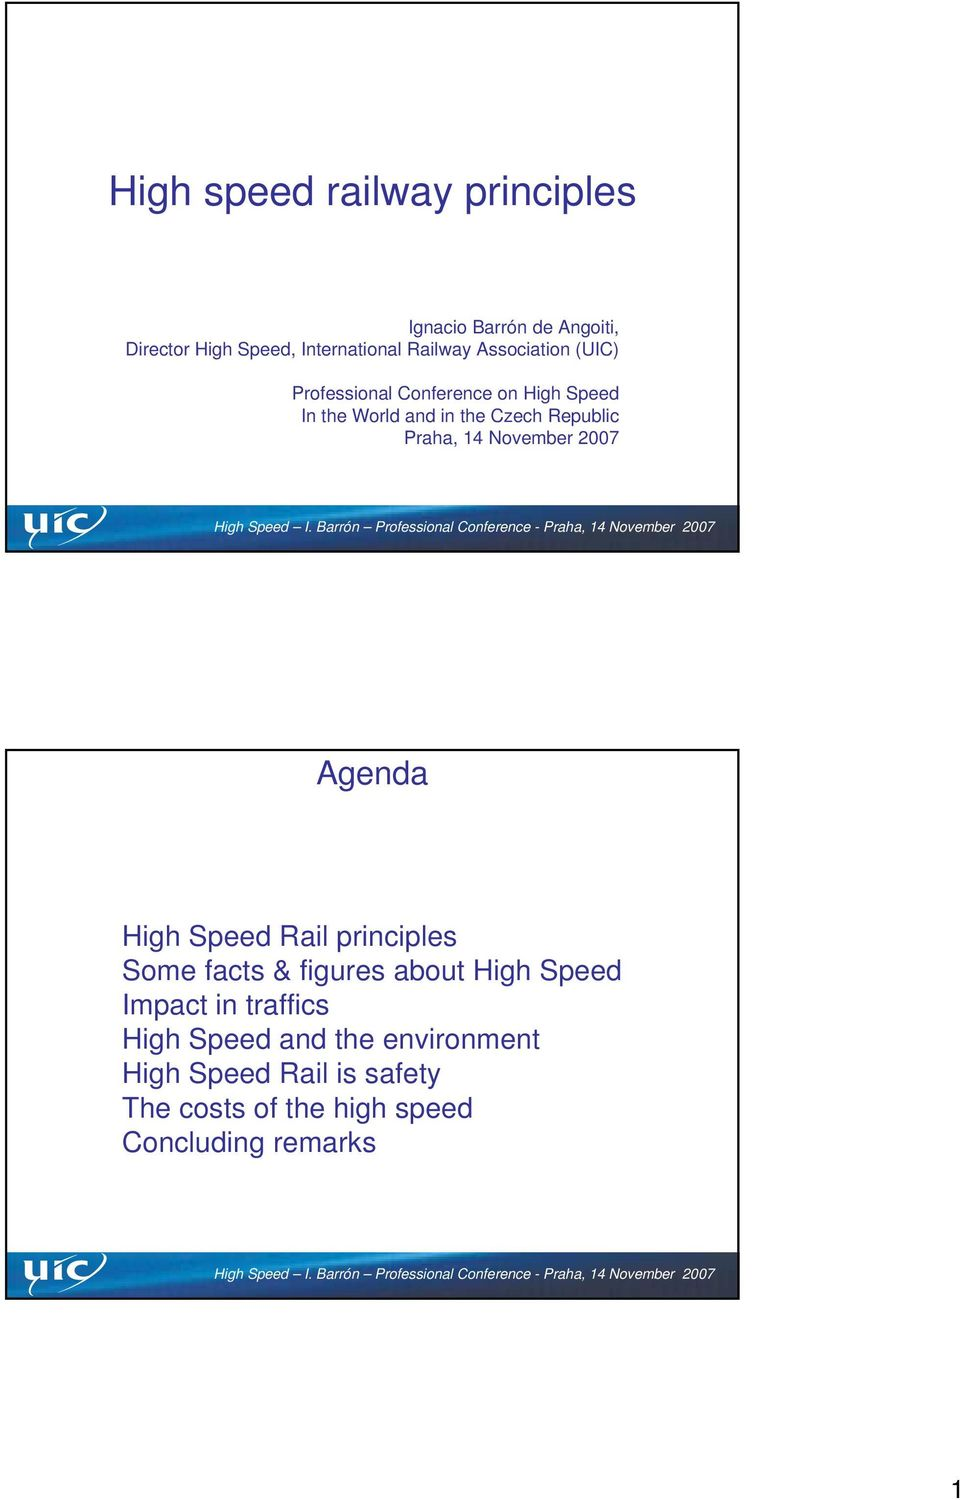 14 November 2007 Agenda High Speed Rail principles Some facts & figures about High Speed Impact in